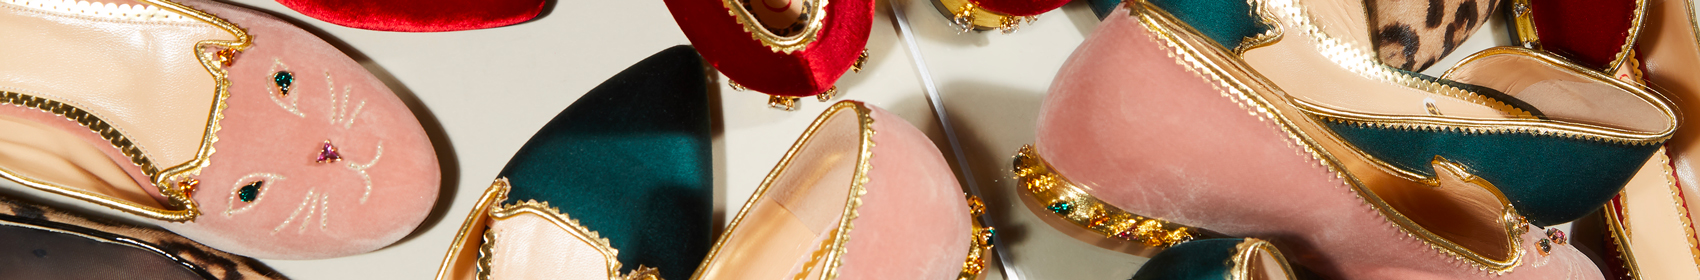 It girl and shoemaker Charlotte Dellal launched her footwear label, Charlotte Olympia, in 2006. Heavily influenced by the old Hollywood glamour of the forties and fifties, Charlotte Olympia creates sumptuous shoes with a classic silhouette.